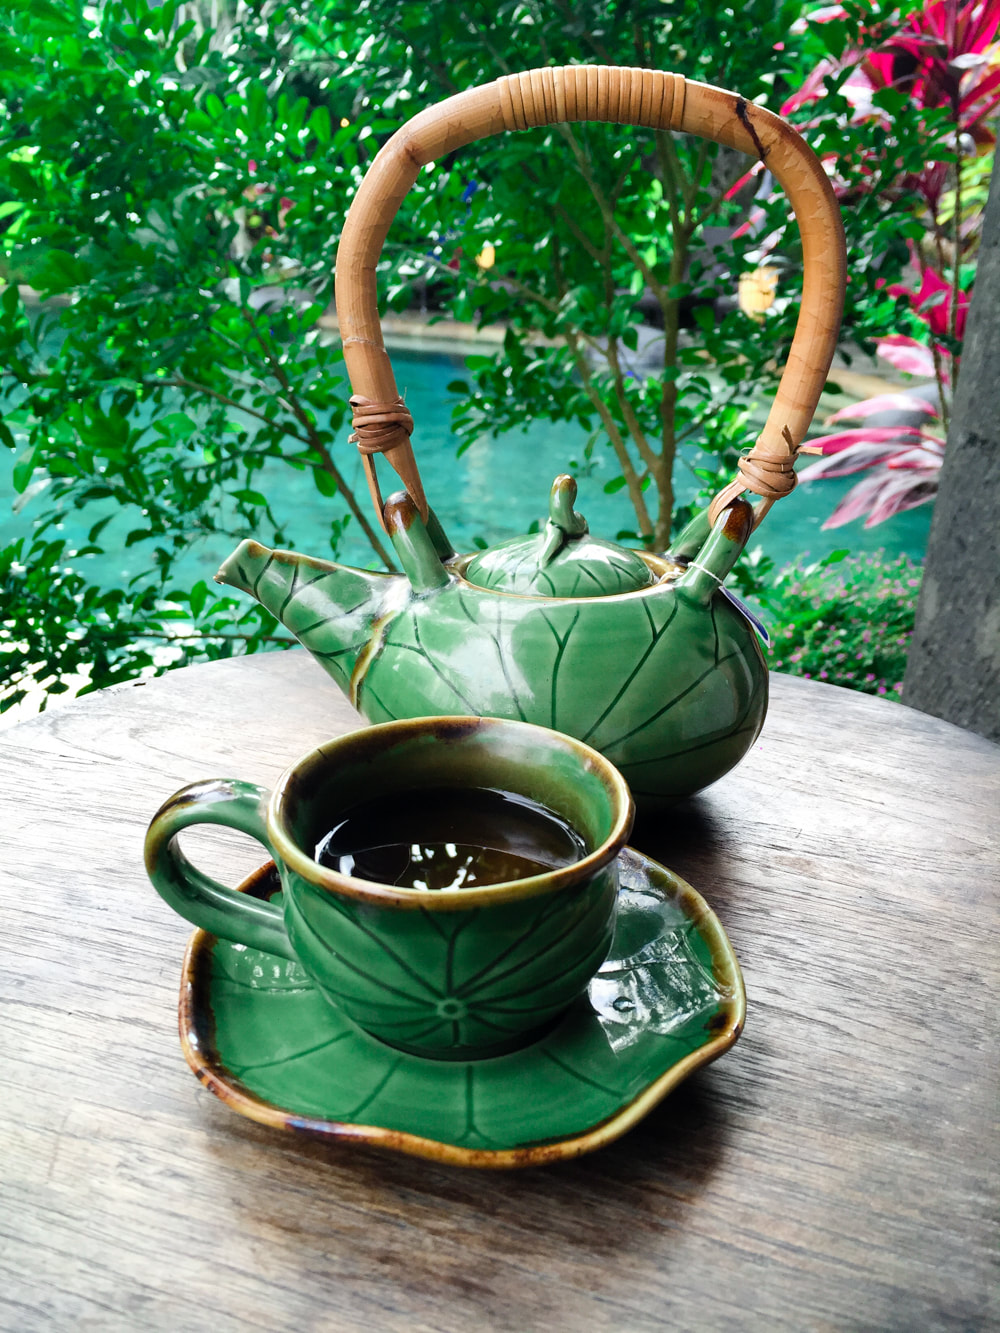 Complimentary tea at Radha Spa. Dwaraka, the Royal Villas, Ubud, Bali, Indonesia.